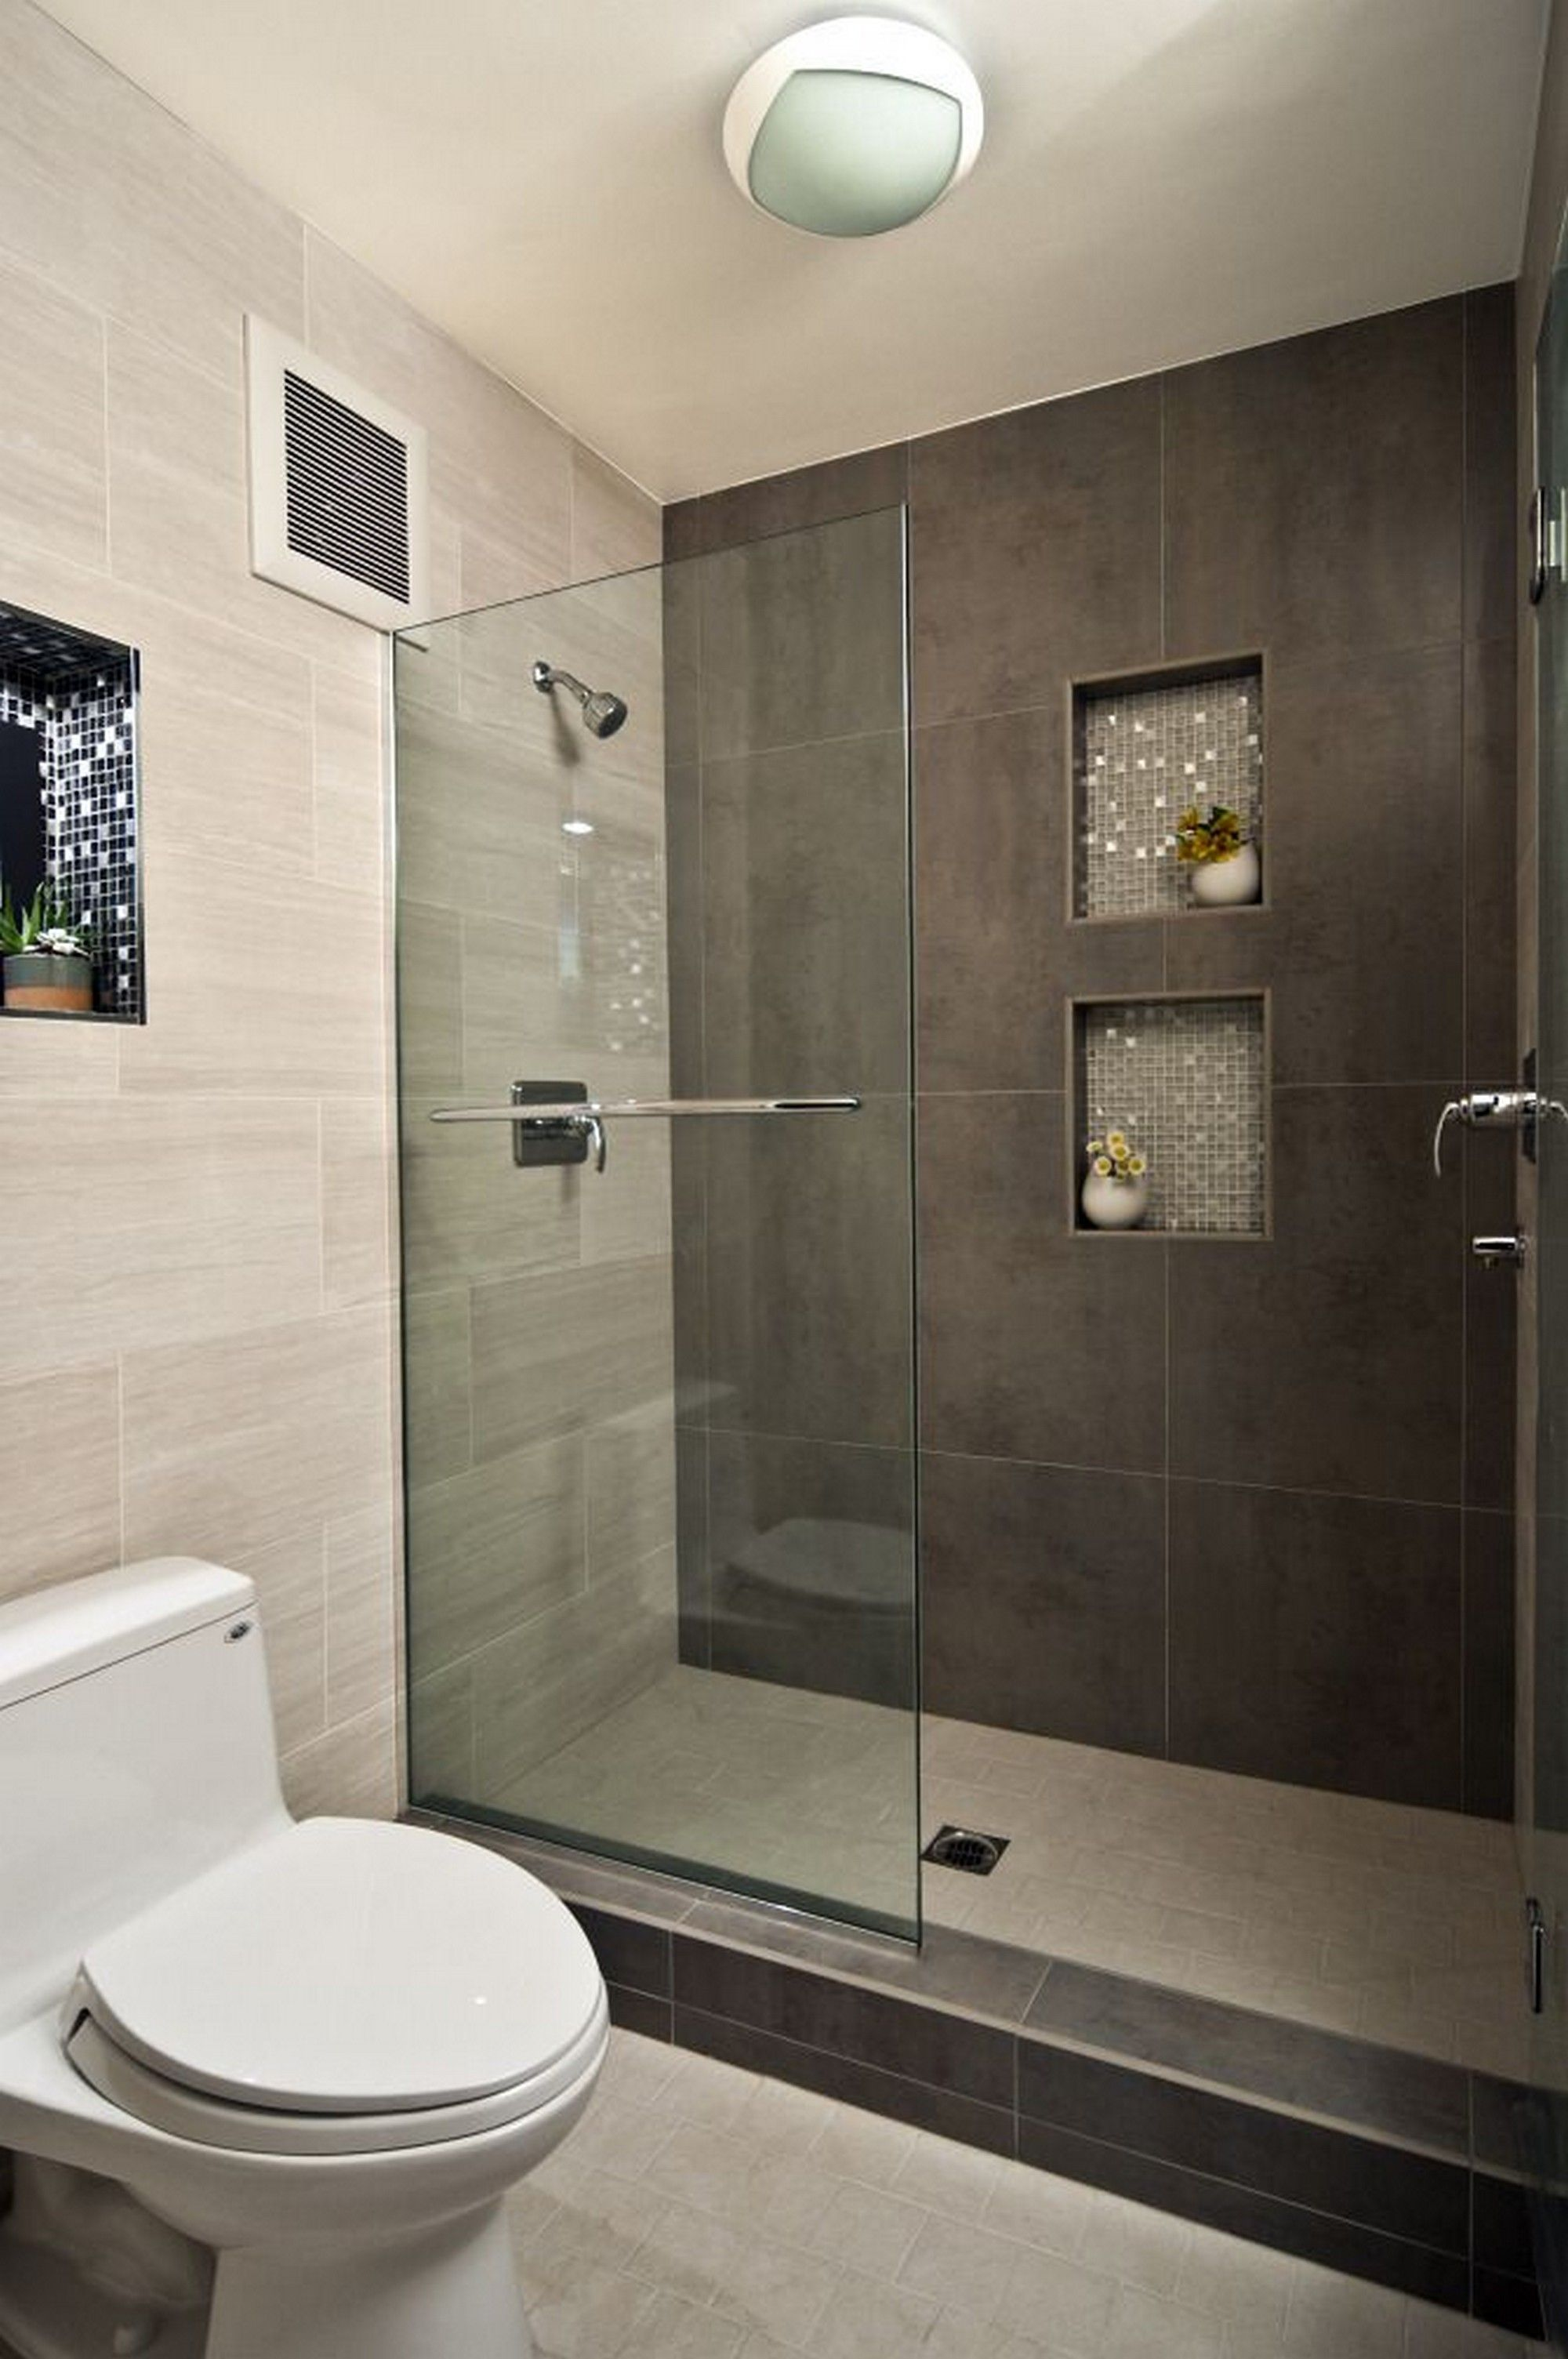 Modern bathroom design ideas with walk in shower small for Bathrooms designs